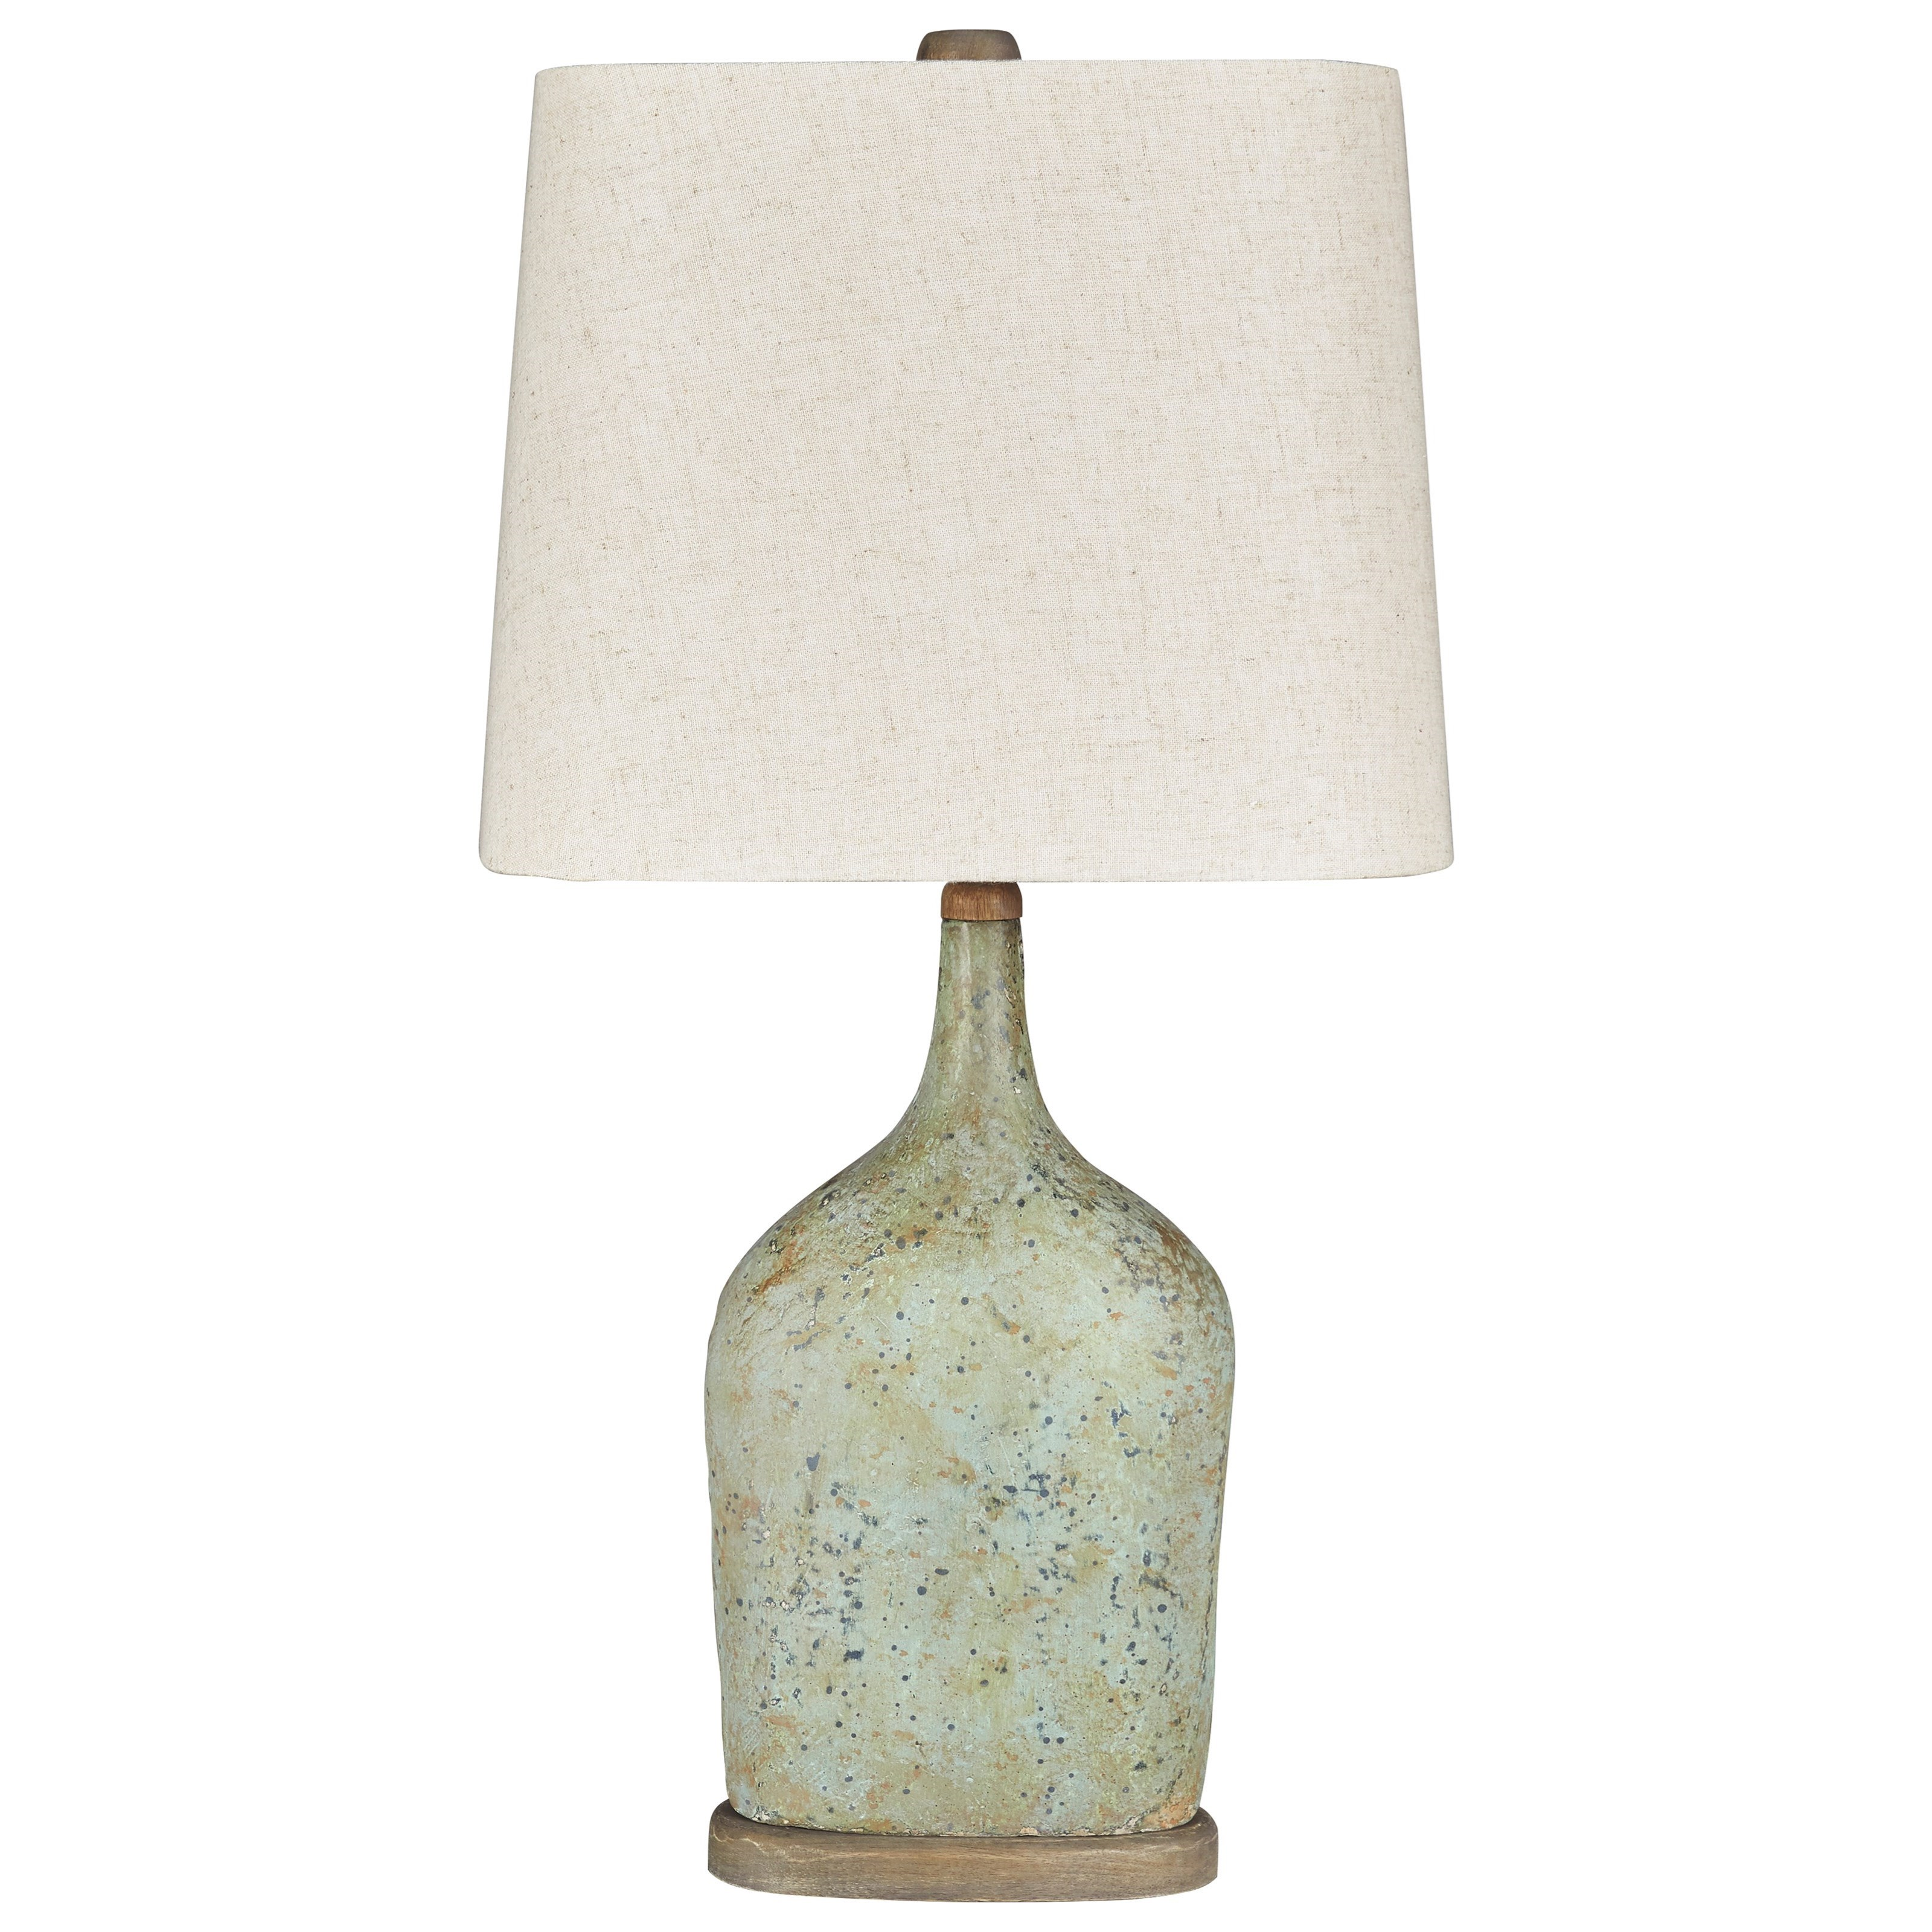 Lamps - Vintage Style Set of 2 Maribeth Sage Paper Table Lamps by Ashley (Signature Design) at Johnny Janosik